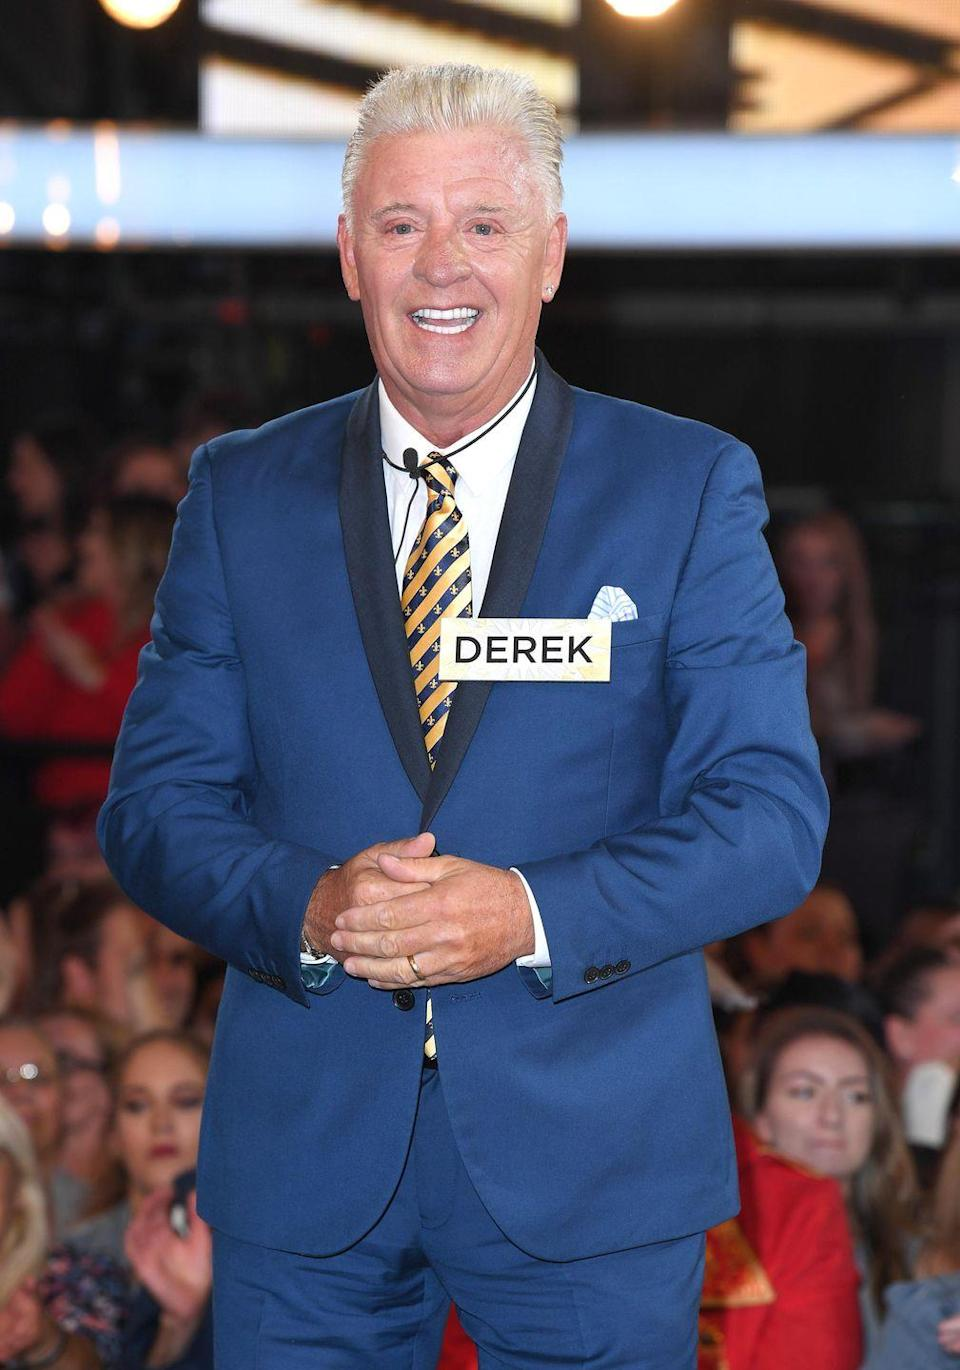 "<p>""Heartbroken to hear the news this morning that my dear friend @derek_acorah has passed away. Was one of the nicest guys in the paranormal industry, always working and opening doors for those that followed in his footsteps. I'll miss you Derek, RIP."" – ghost hunter Lee Roberts</p><p>""I'm devastated to wake up this morning to the news of my friend Degsy passing. I had the privilege of working alongside him for a few years. Derek was funny amazing a gentleman& a very good friend. My thoughts are with Gwen Ray & the family. RIP Degsy."" – Danniella Westbrook</p><p>""RIP Derek Acorah. We helped each other through the lunacy of Big Brother by talking football and life in general. A total gentleman. Much love to his wife Gwen and his fabulous brother who was so kind to my wife when they appeared on the show."" – Shaun Williamson </p>"